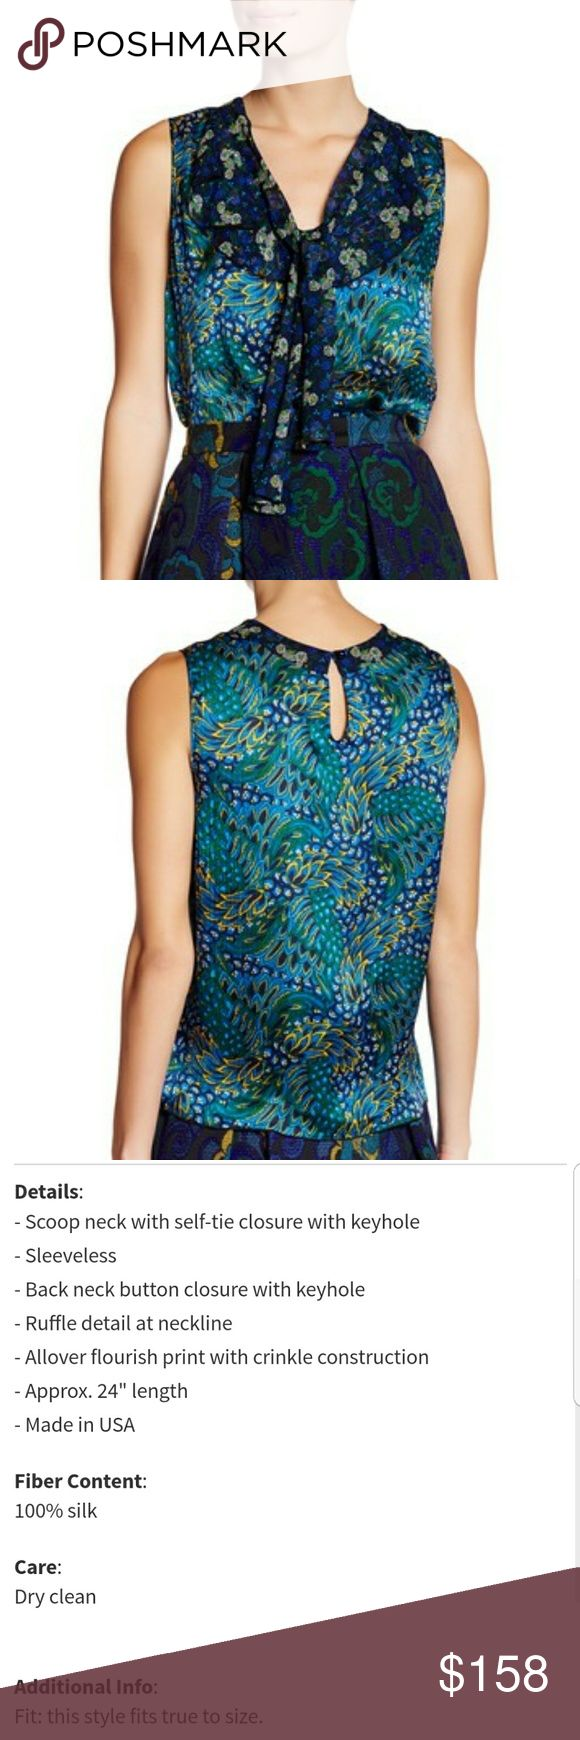 NWT *Final Price* Anna Sui peacock top Brand new with tags Anna Sui peacock top  **08-5bin (storage note to self ) Anna Sui Tops